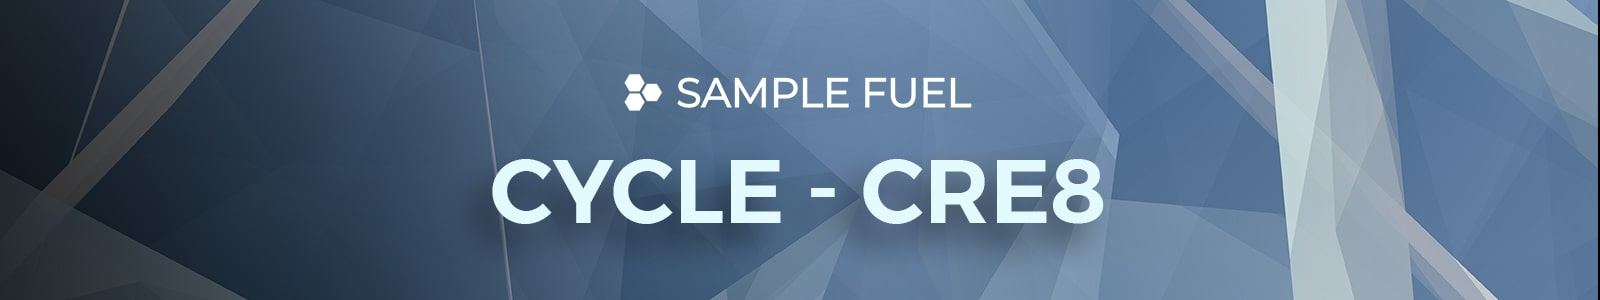 CYCLE - CRE8 by SAMPLE FUEL